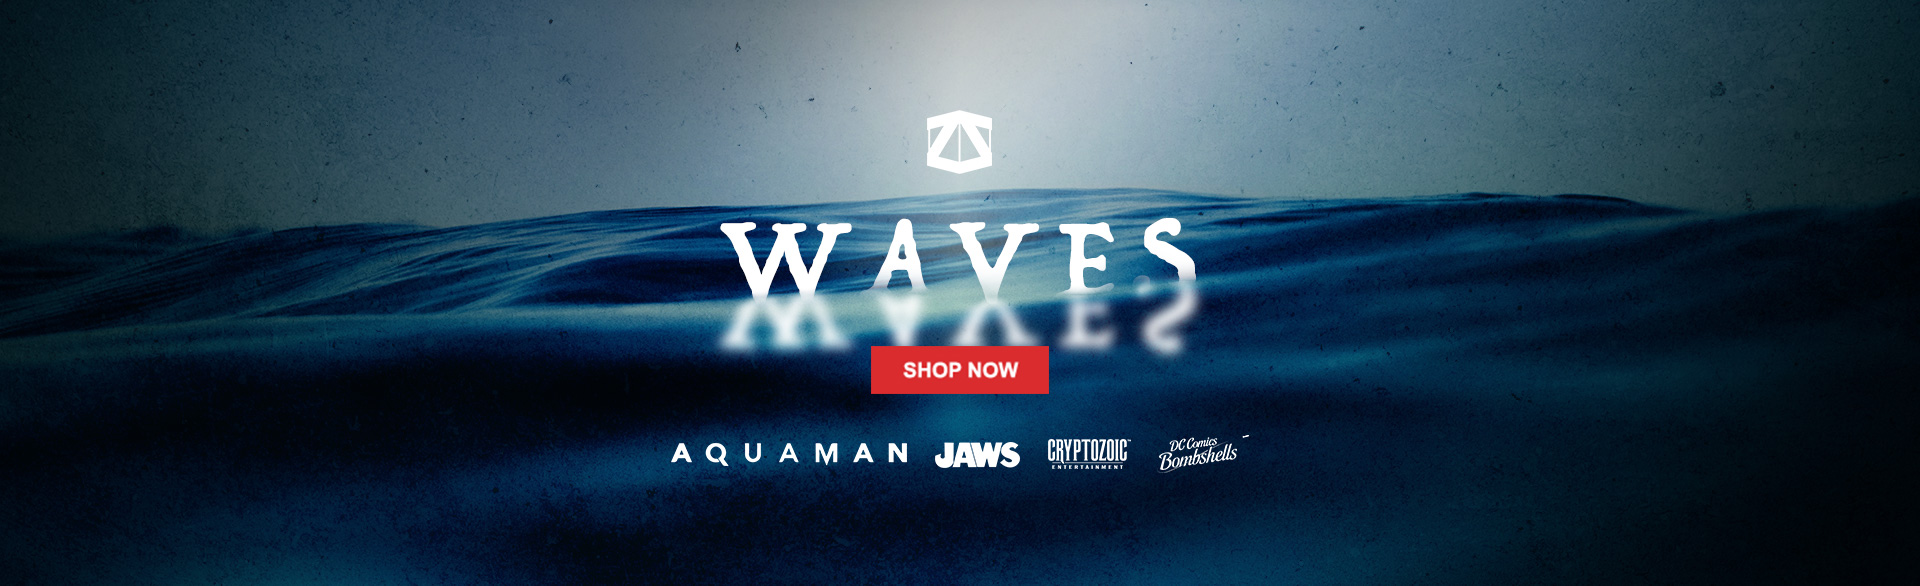 NEW ZBOX BANNER - WAVES